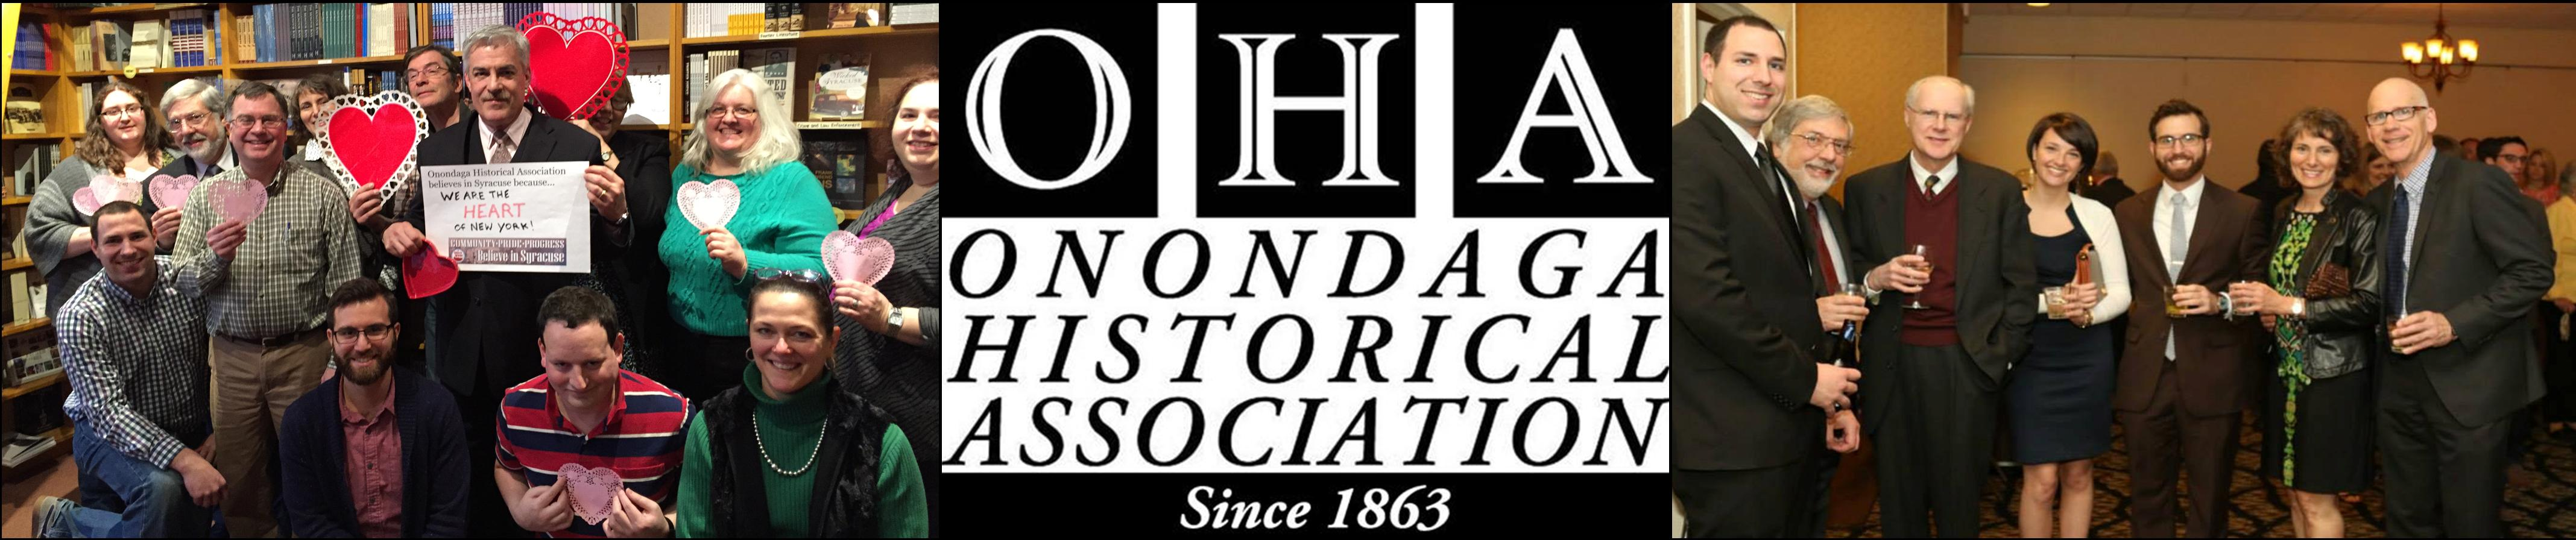 Employment Opportunities at Onondaga Historical Association